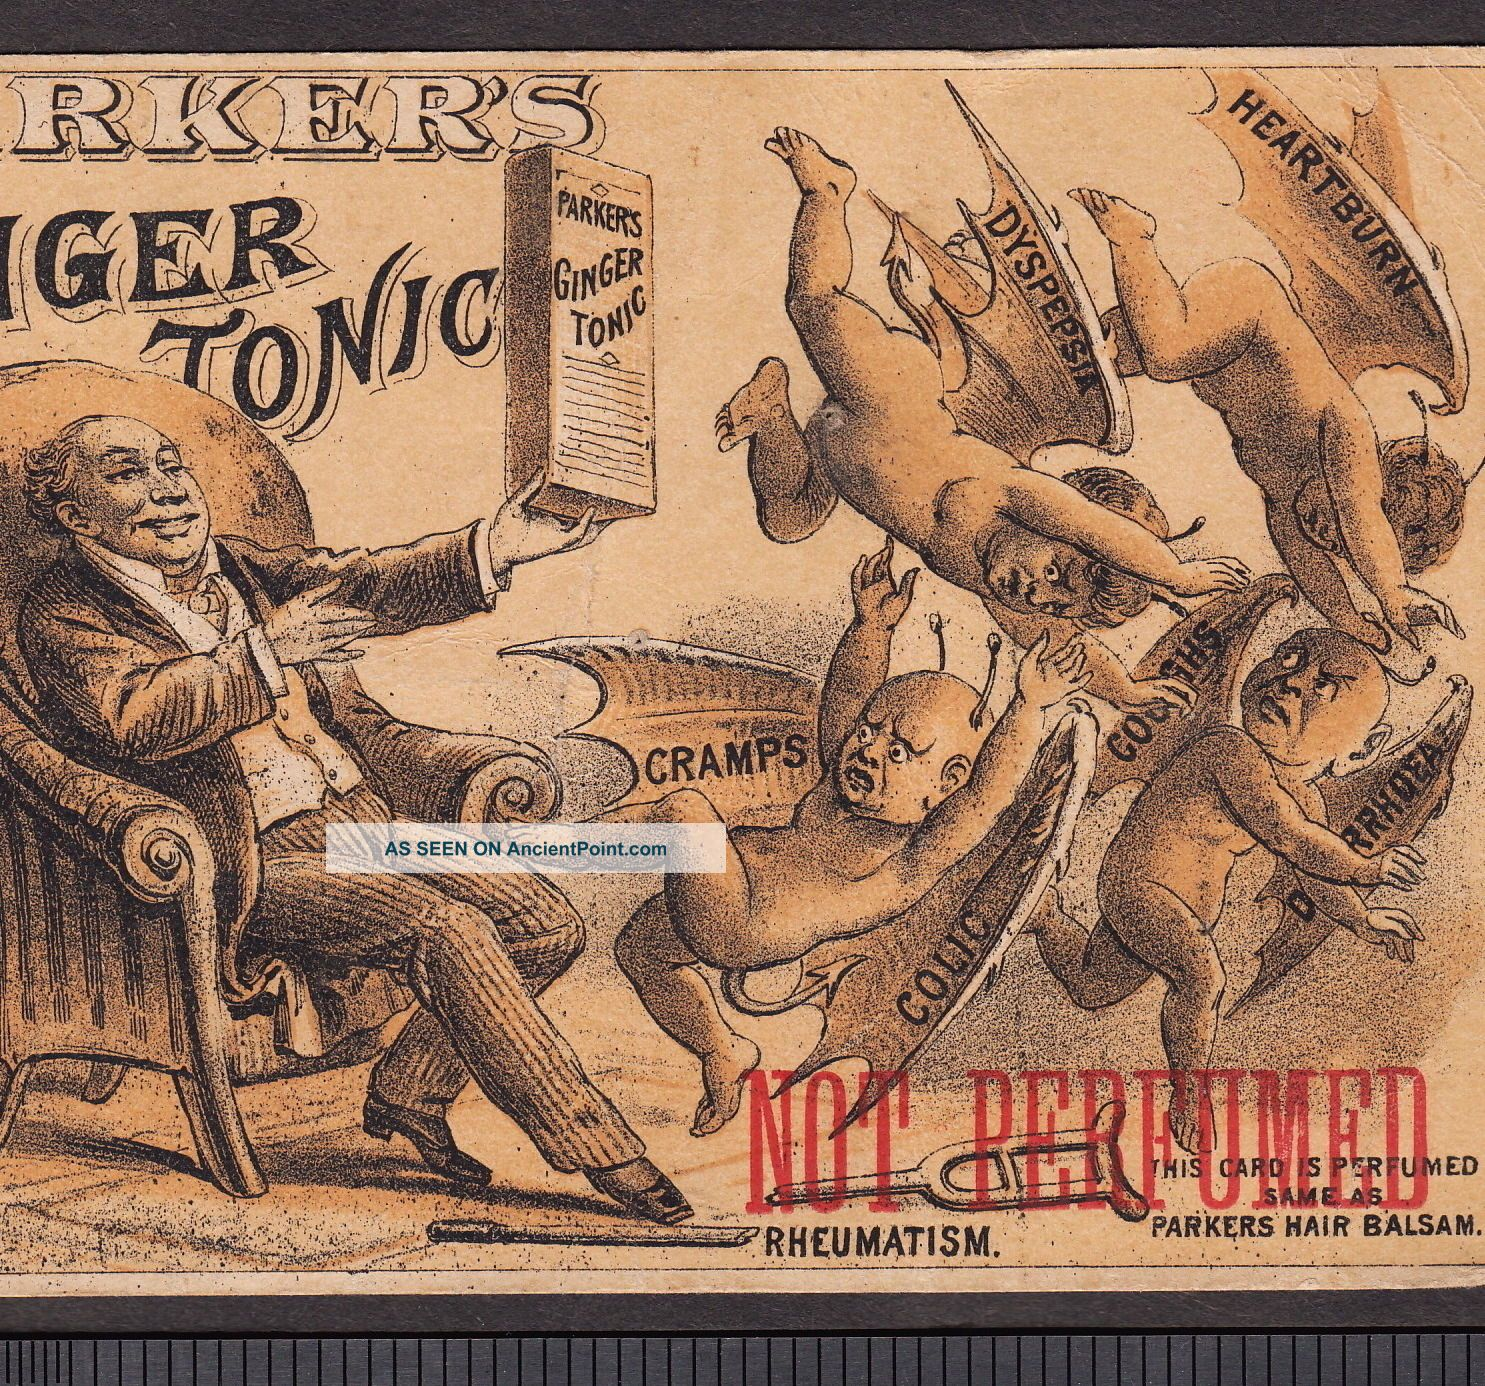 Demon Diseases Female Weakness Remedy Parkers Ginger Tonic Hair Advertising Card Quack Medicine photo